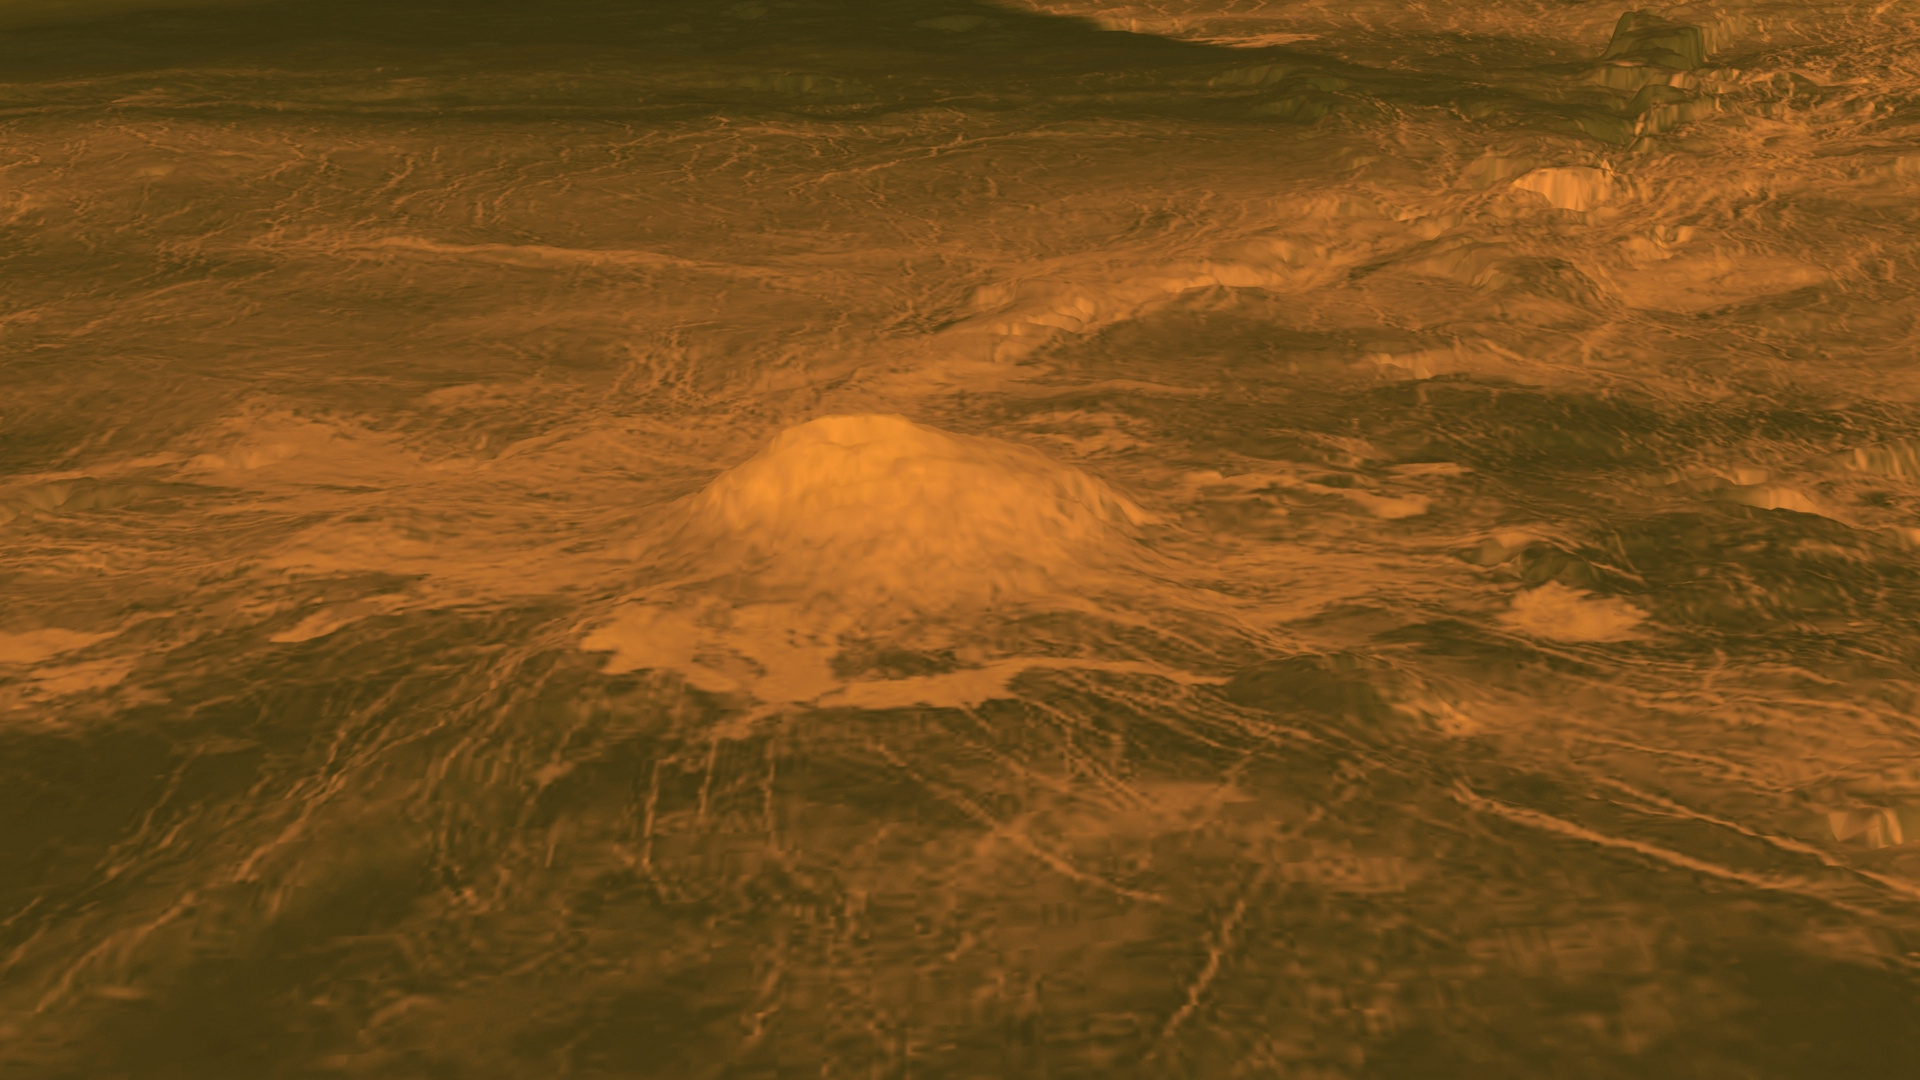 This figure displays an elevation model of Idunn Mons (46 S; 146 W), a volcano with a diameter of 200kilometres (124miles) located at Imdr Regio on Venus. Image credit: NASA/JPL-Caltech/ESA.